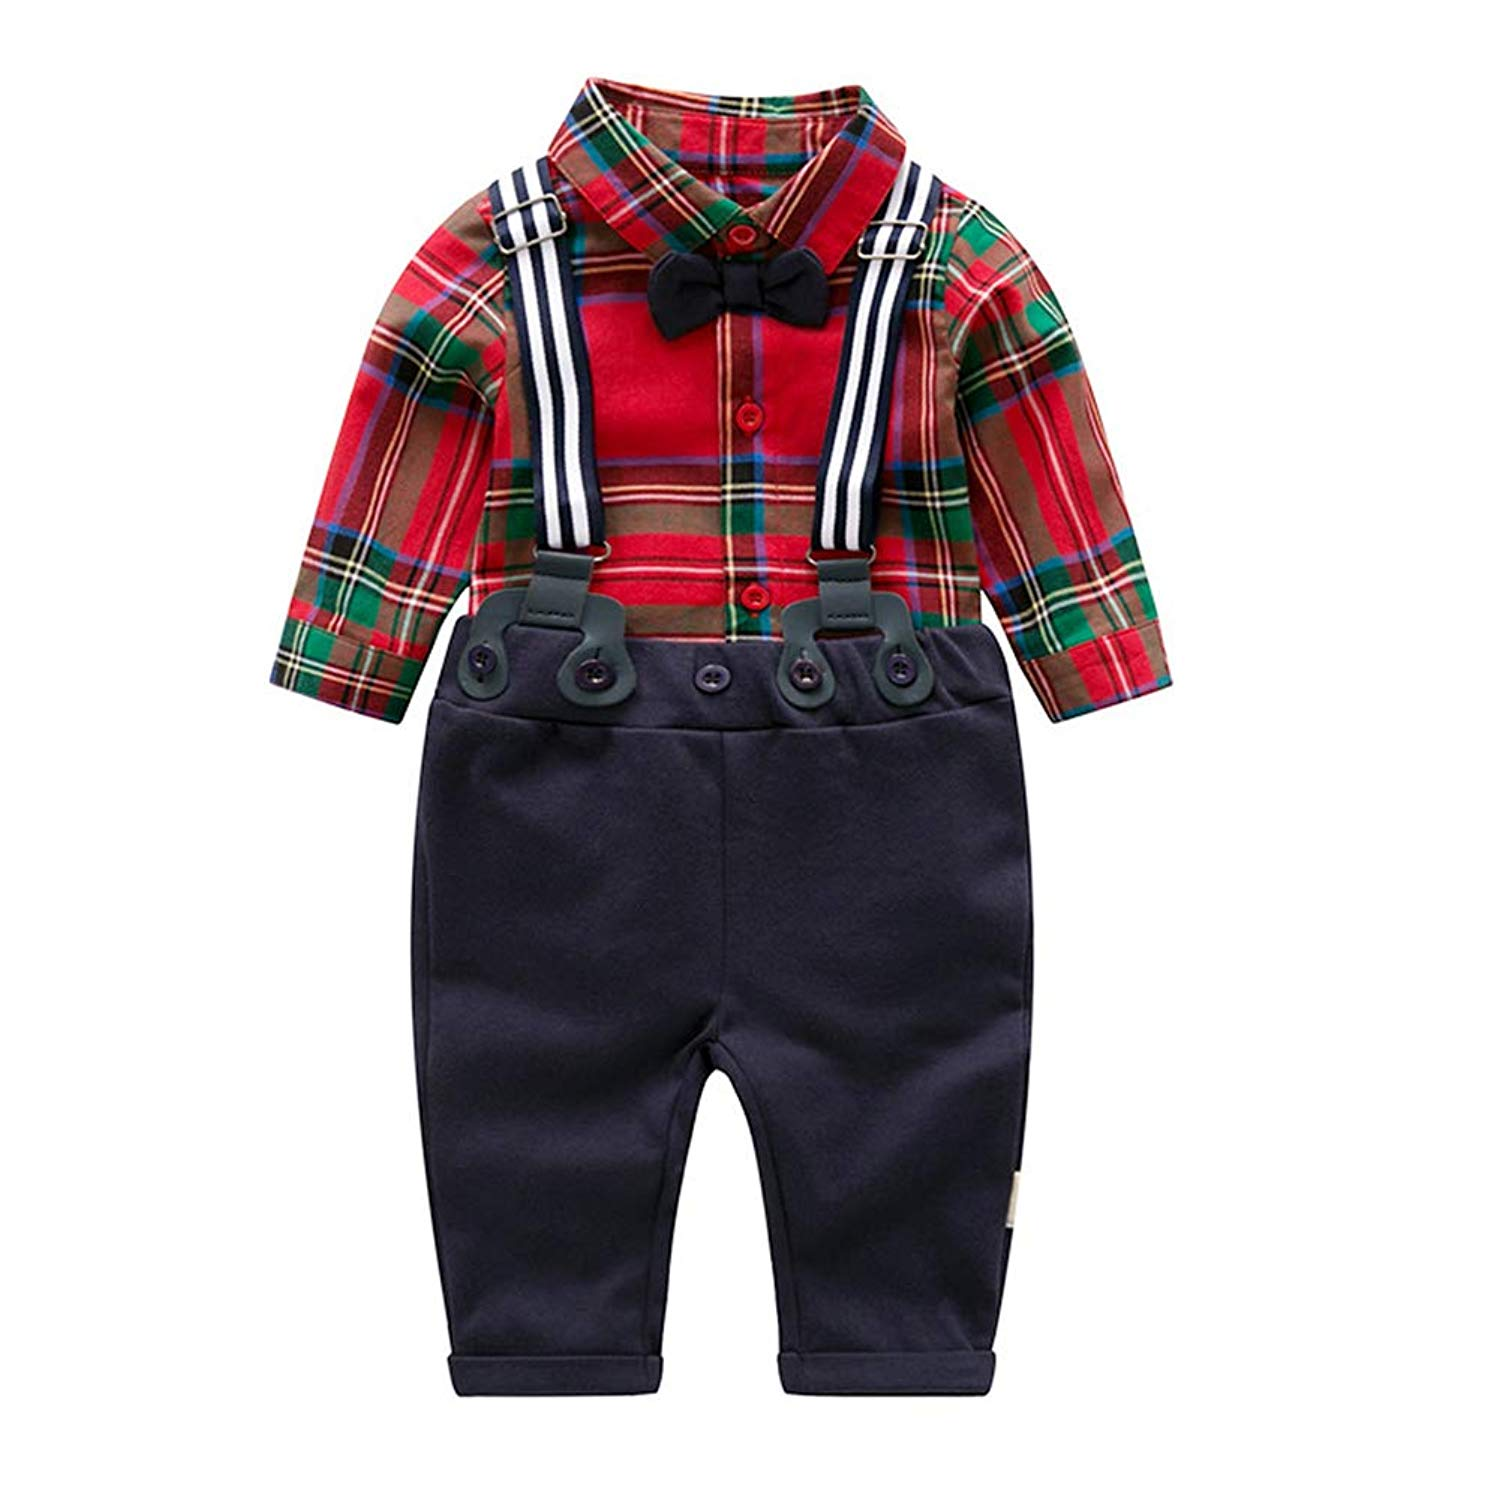 1aaca0e4ea25b Cheap Bow Tie Romper, find Bow Tie Romper deals on line at Alibaba.com